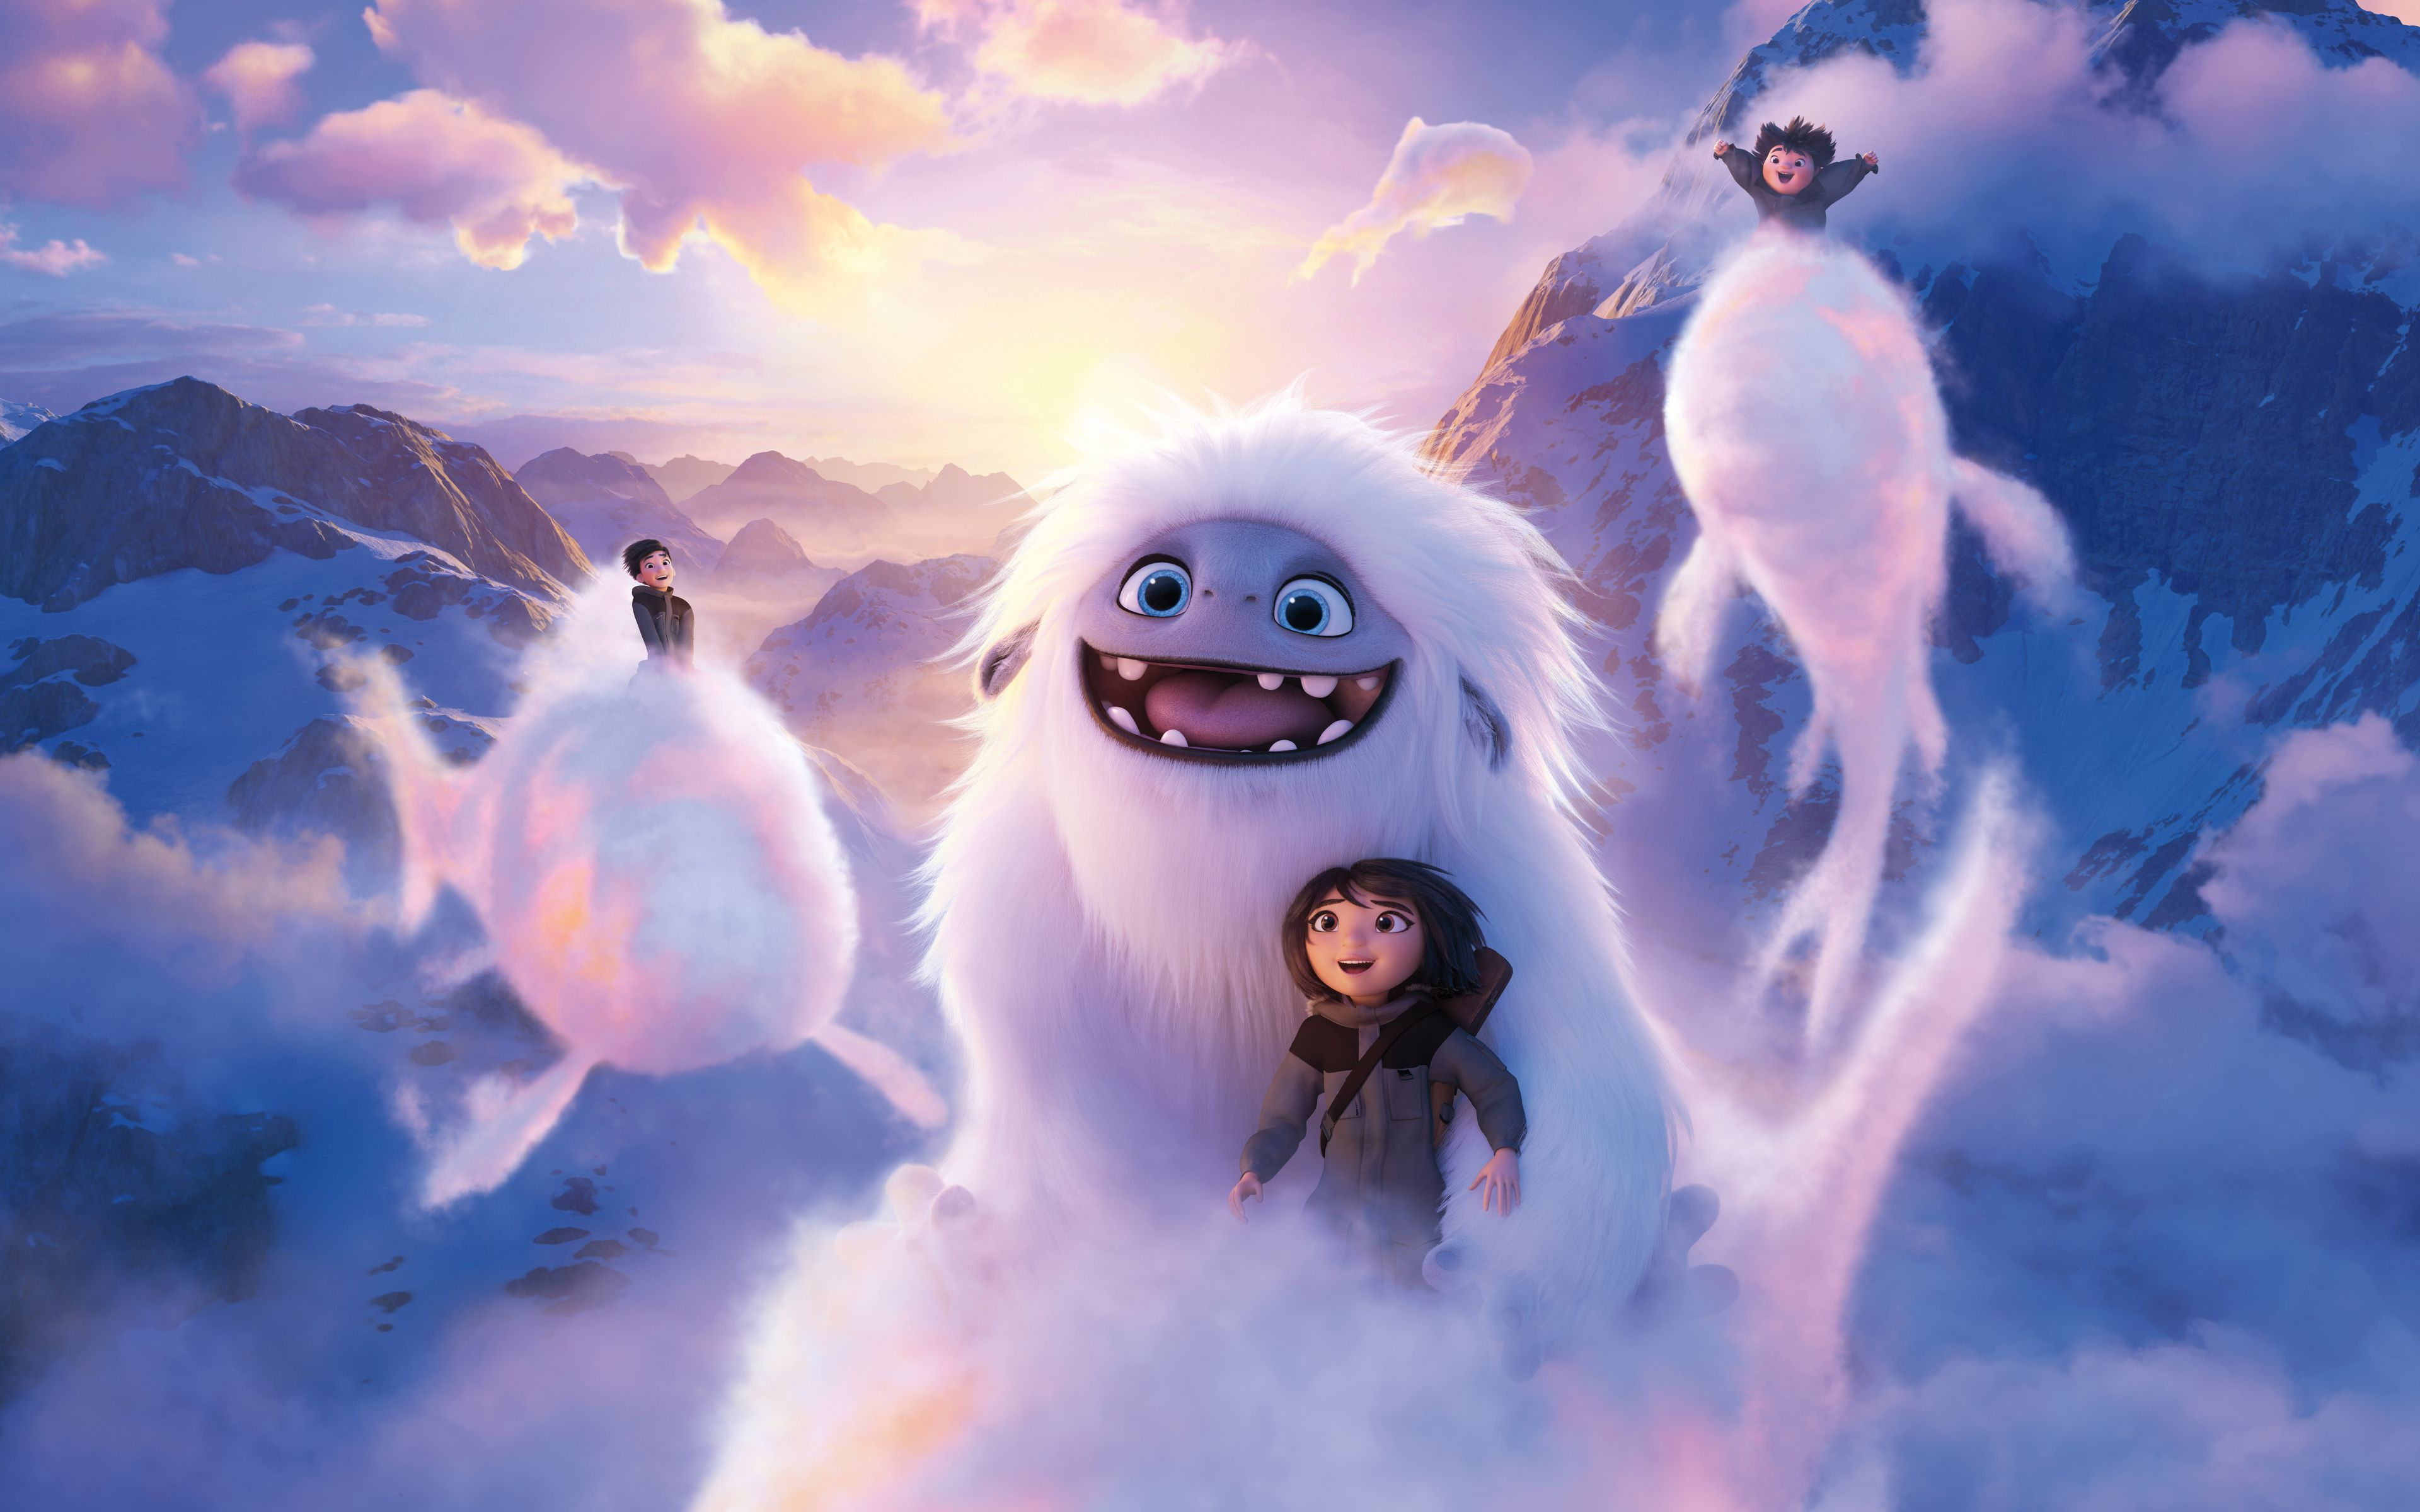 3840x2400 Abominable Kid And Yeti Flight Clouds 2019 Movie Wallpaper Movie Wallpapers French Films Kid Movies Disney